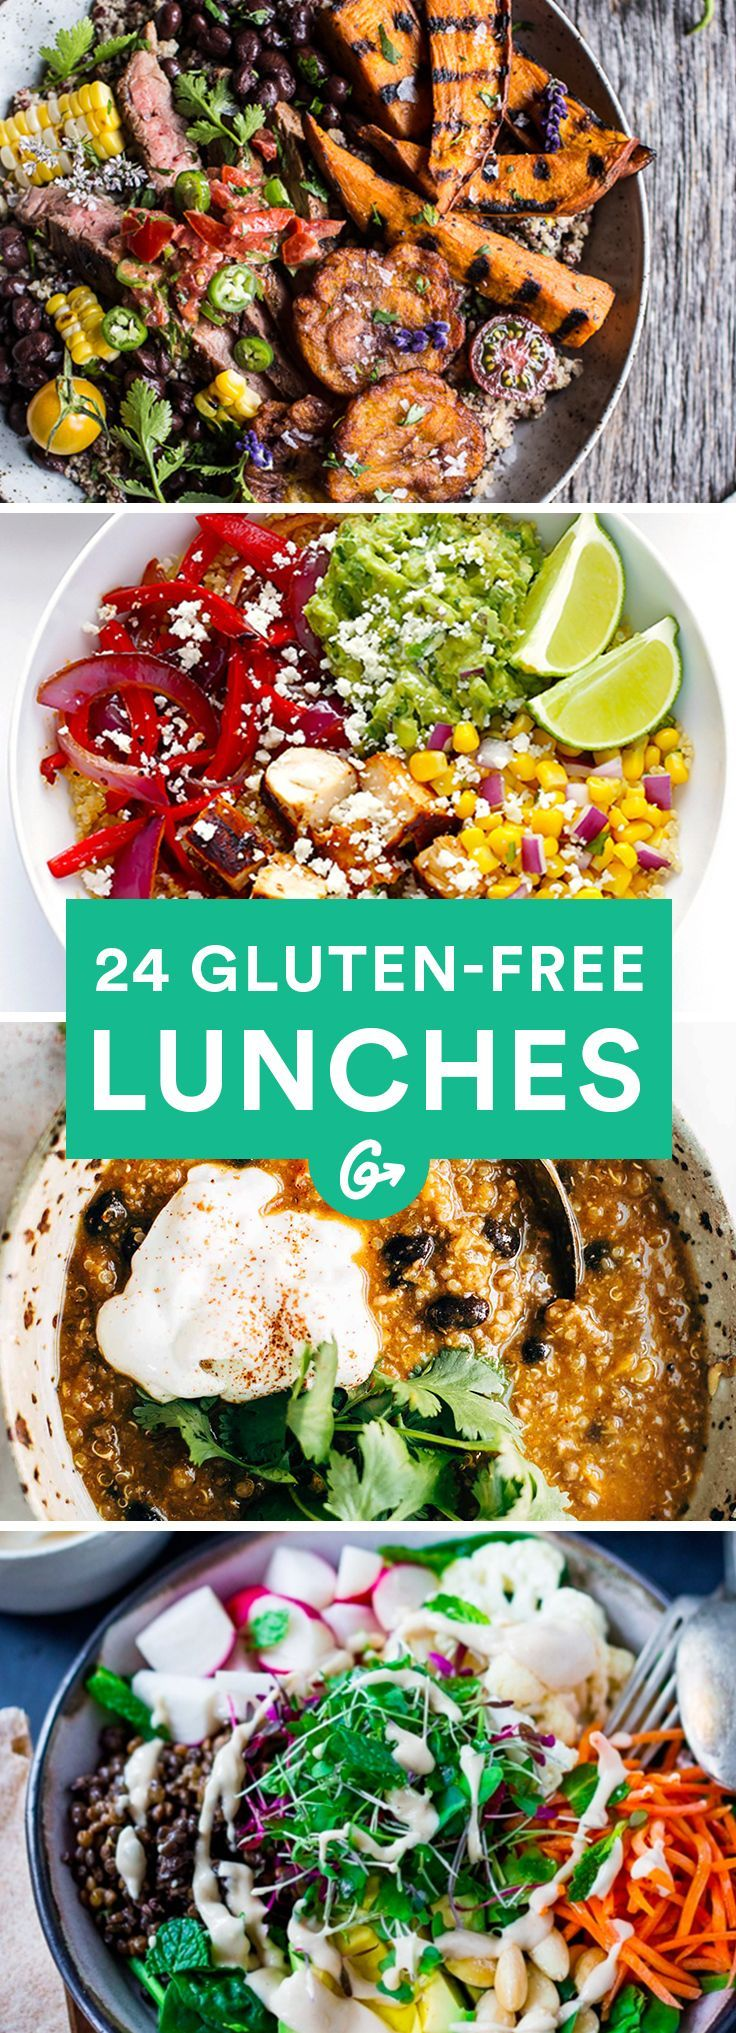 In the mood for something new? These gluten-free recipes are easy to make and even easier to eat. #glutenfree #lunch #recipes http://greatist.com/eat/gluten-free-recipes-to-make-for-lunch